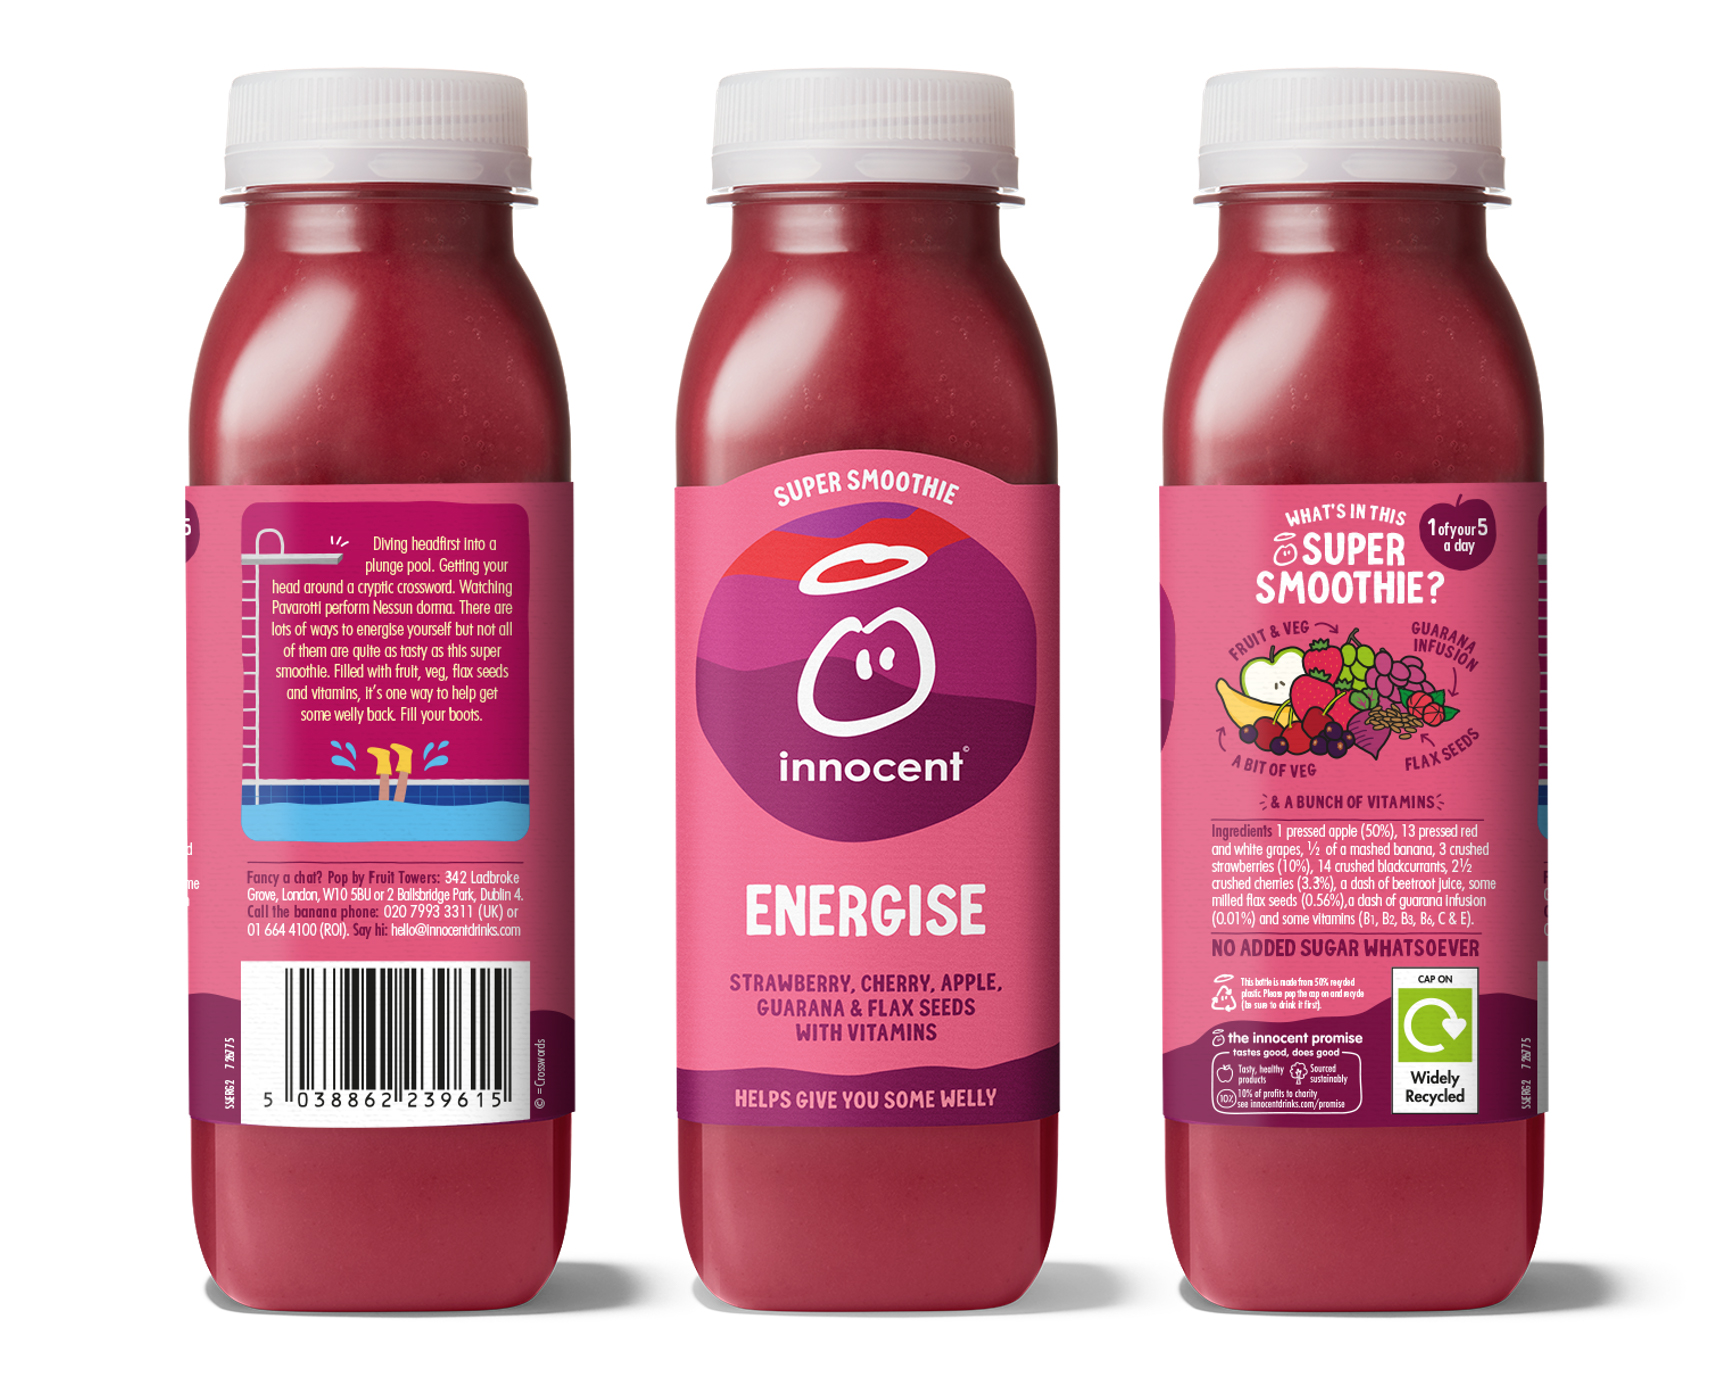 RENEE MELO LTD NNOCENT SUPER SMOOTHIES_01